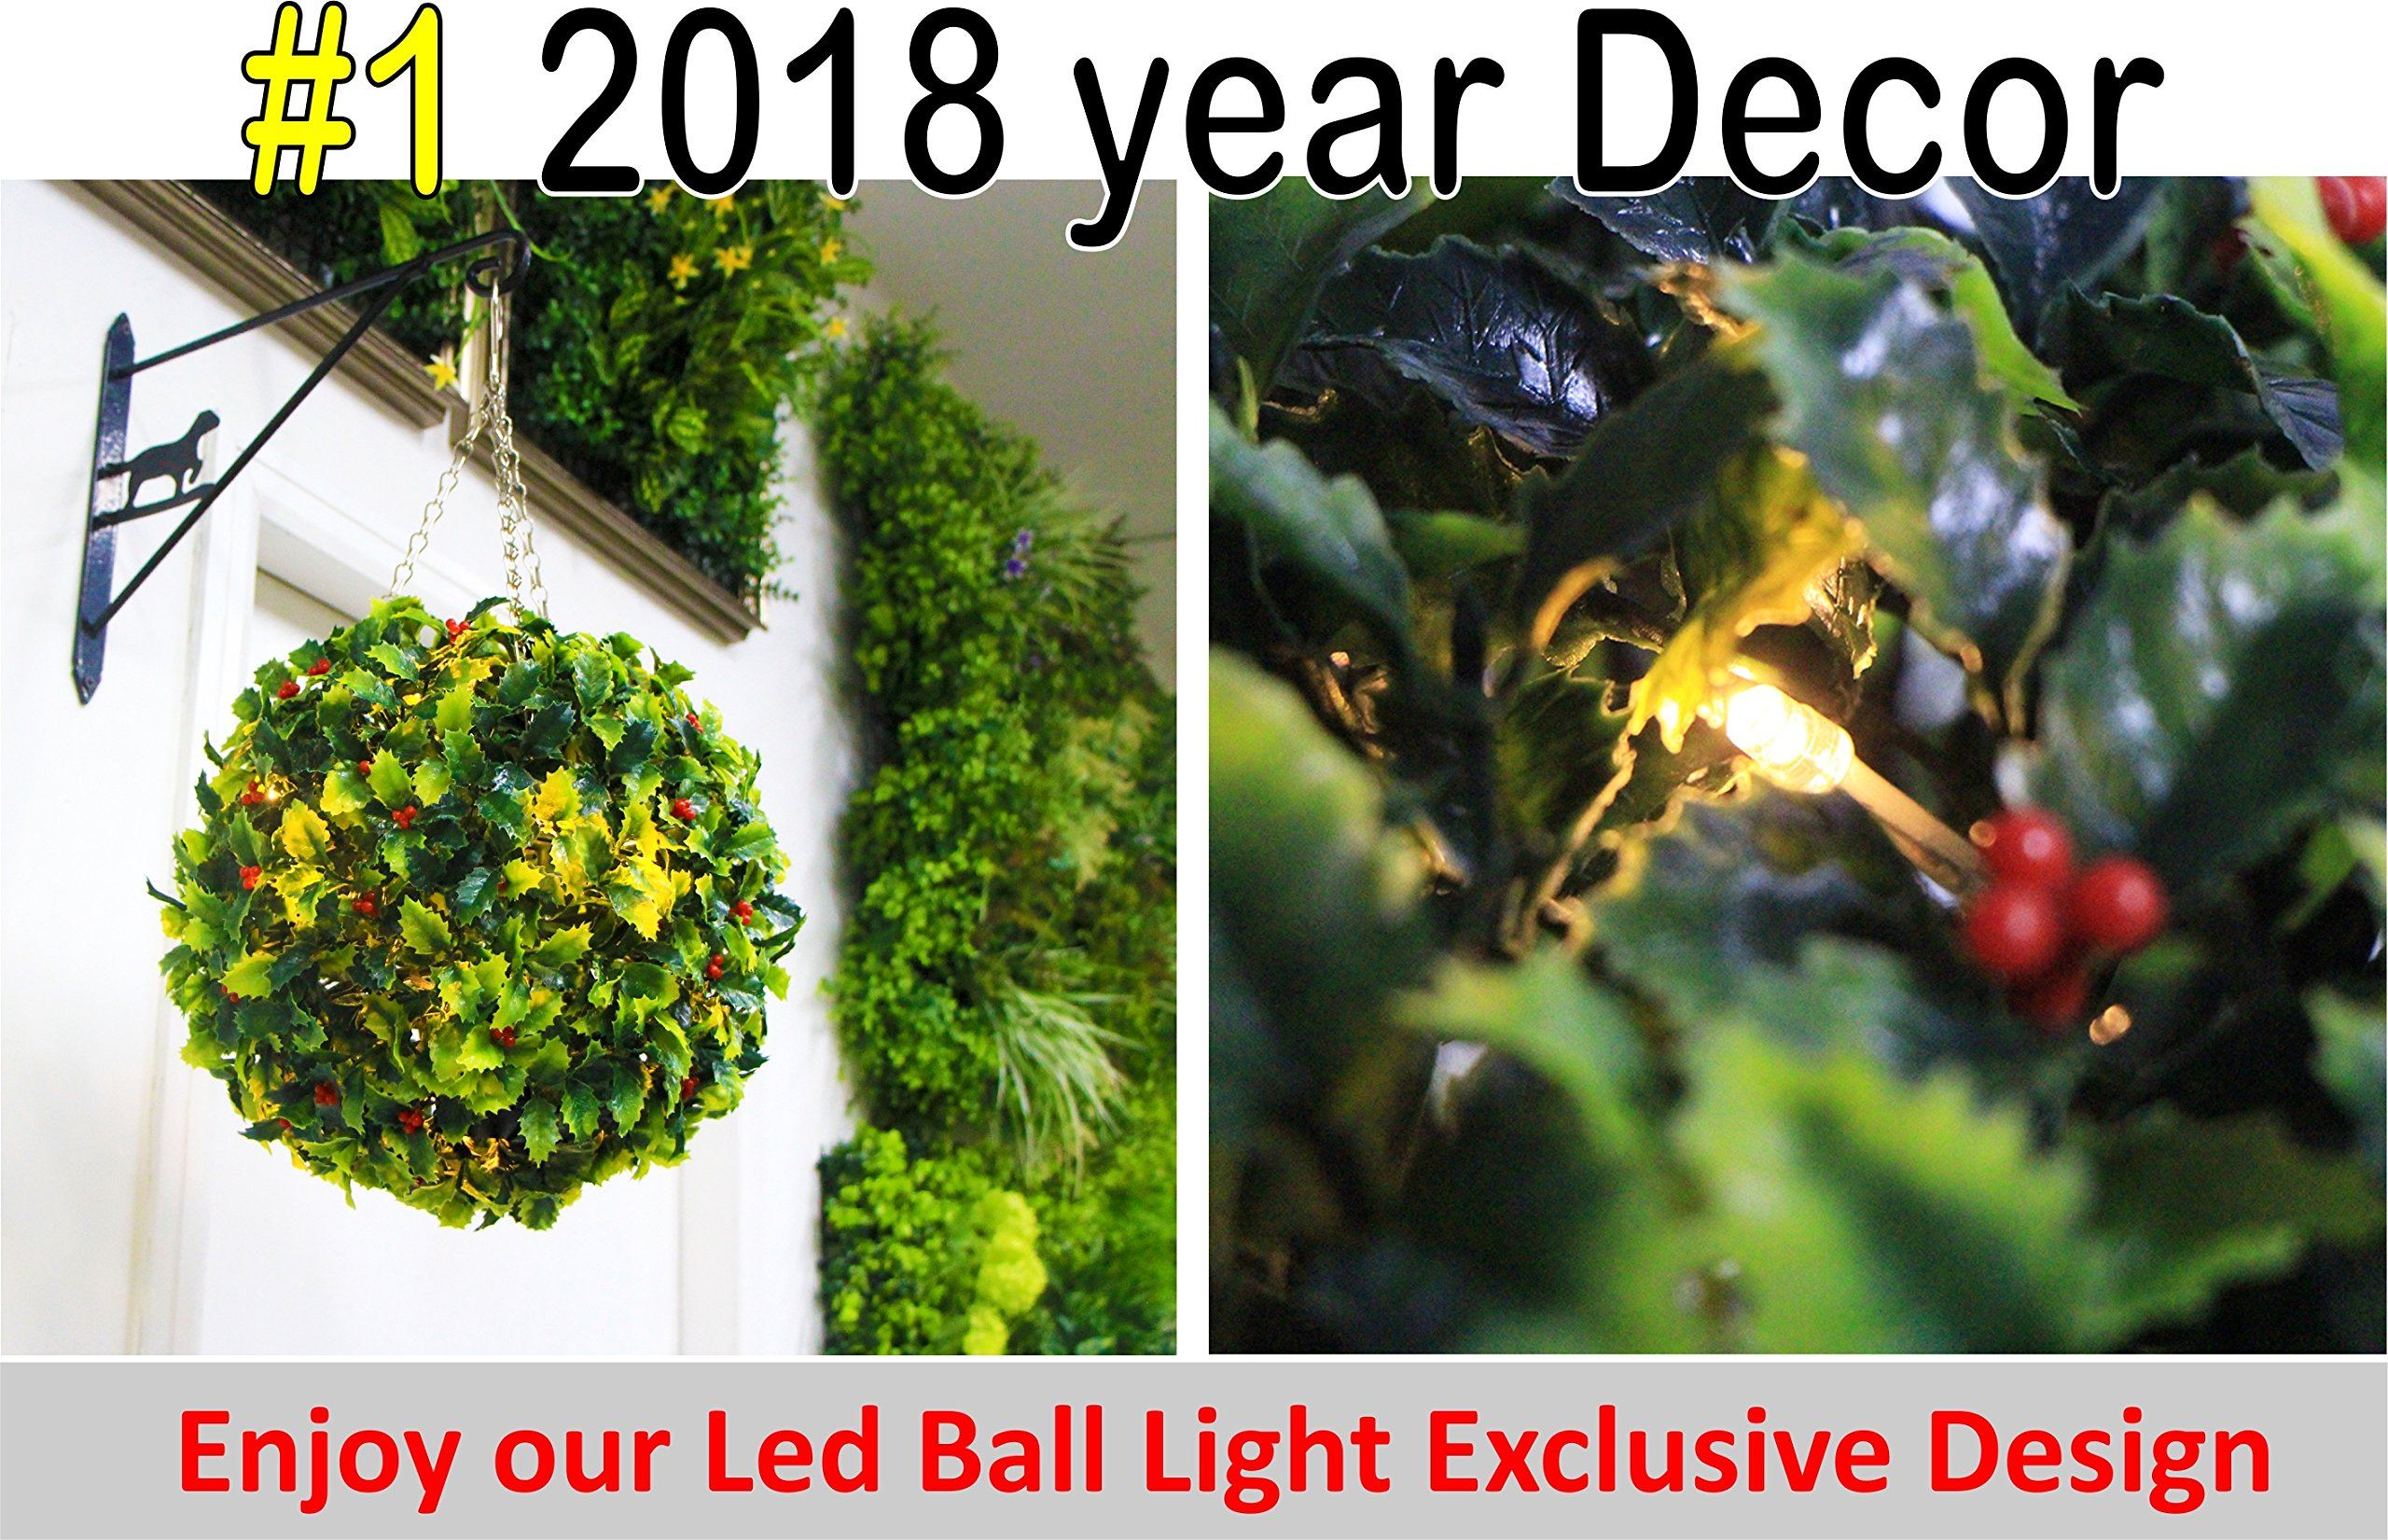 6 GENPAR Christmas DECORATIONS Artificial Boxwood Hedge Ball w/ LED LIGHT EXCLUSIVE DECOR 11.8'' diameter 2018 NEW ARRIVAL Natural TREE LEAF NO WATER Topiary Plant Indoor Outdoor Pendant Patio Home by GENPAR